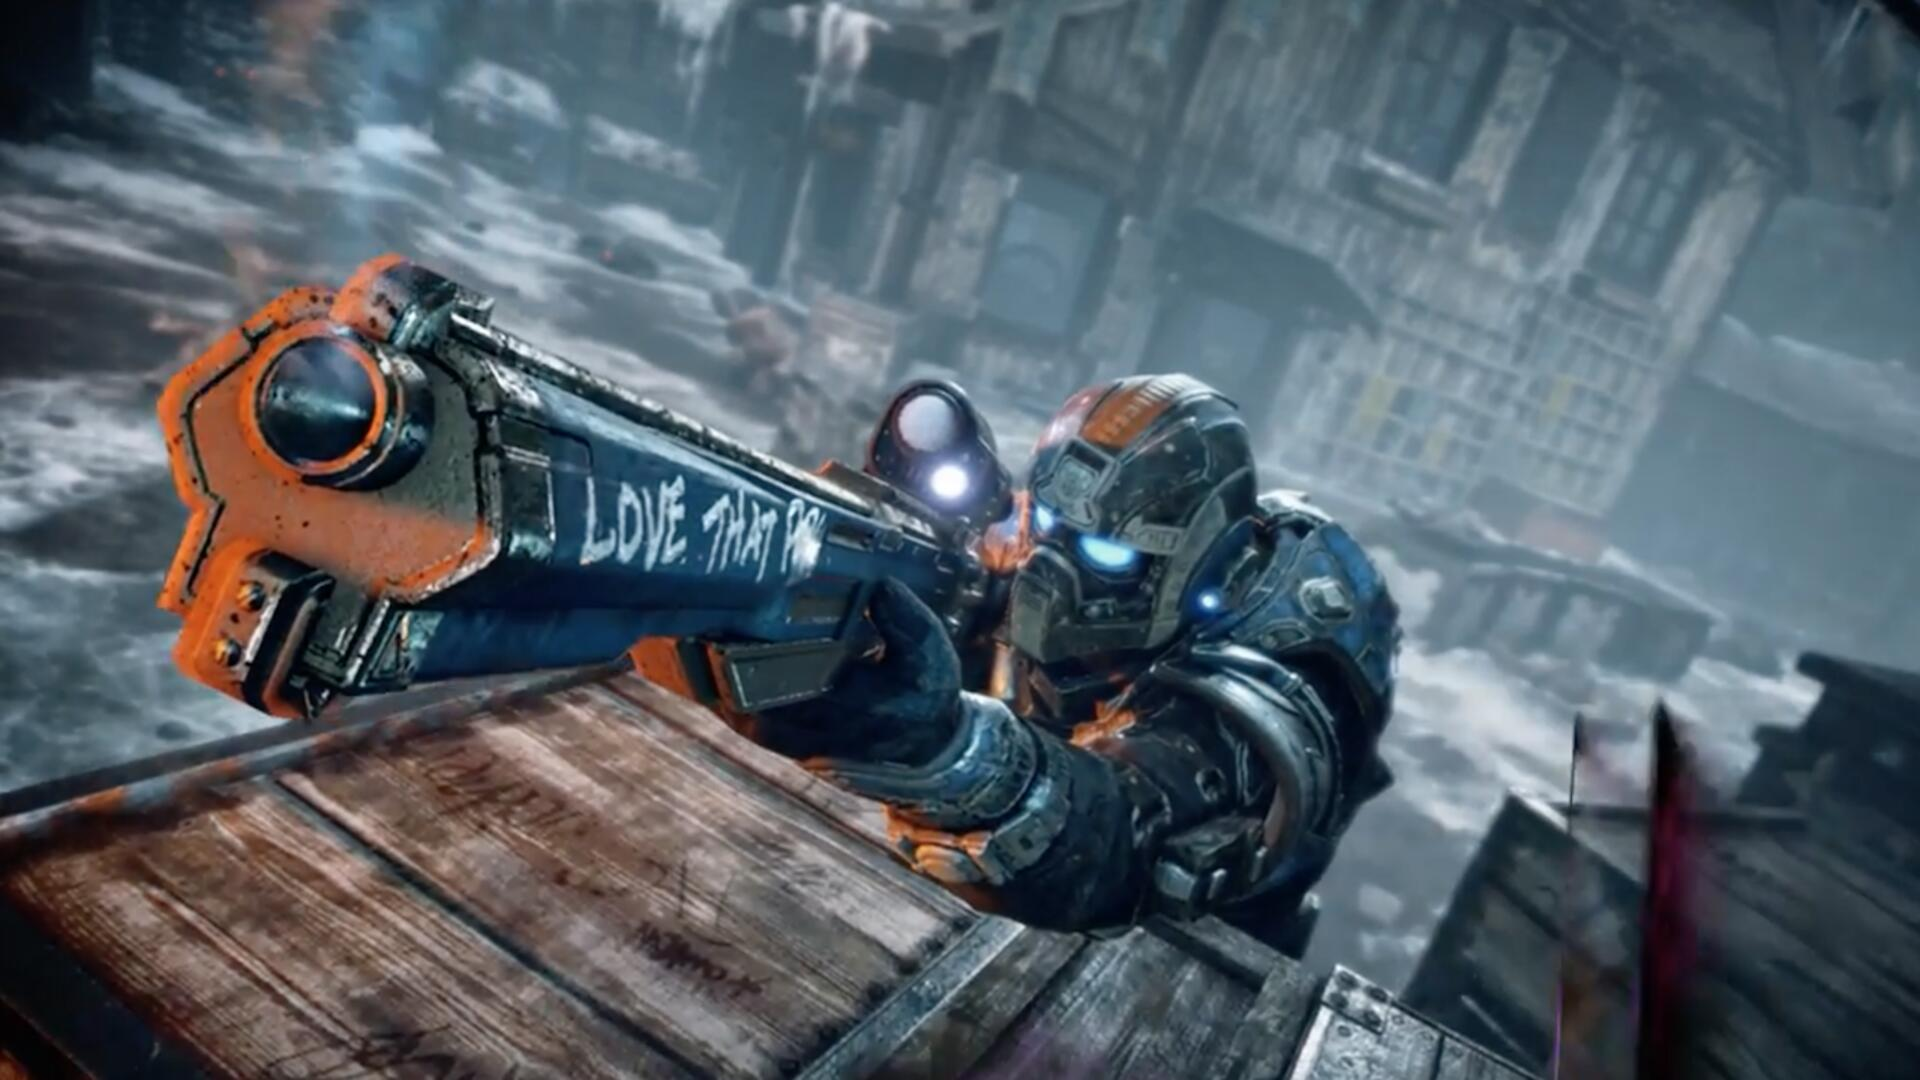 This Week's Best Video Game Deals - 09/15/2017